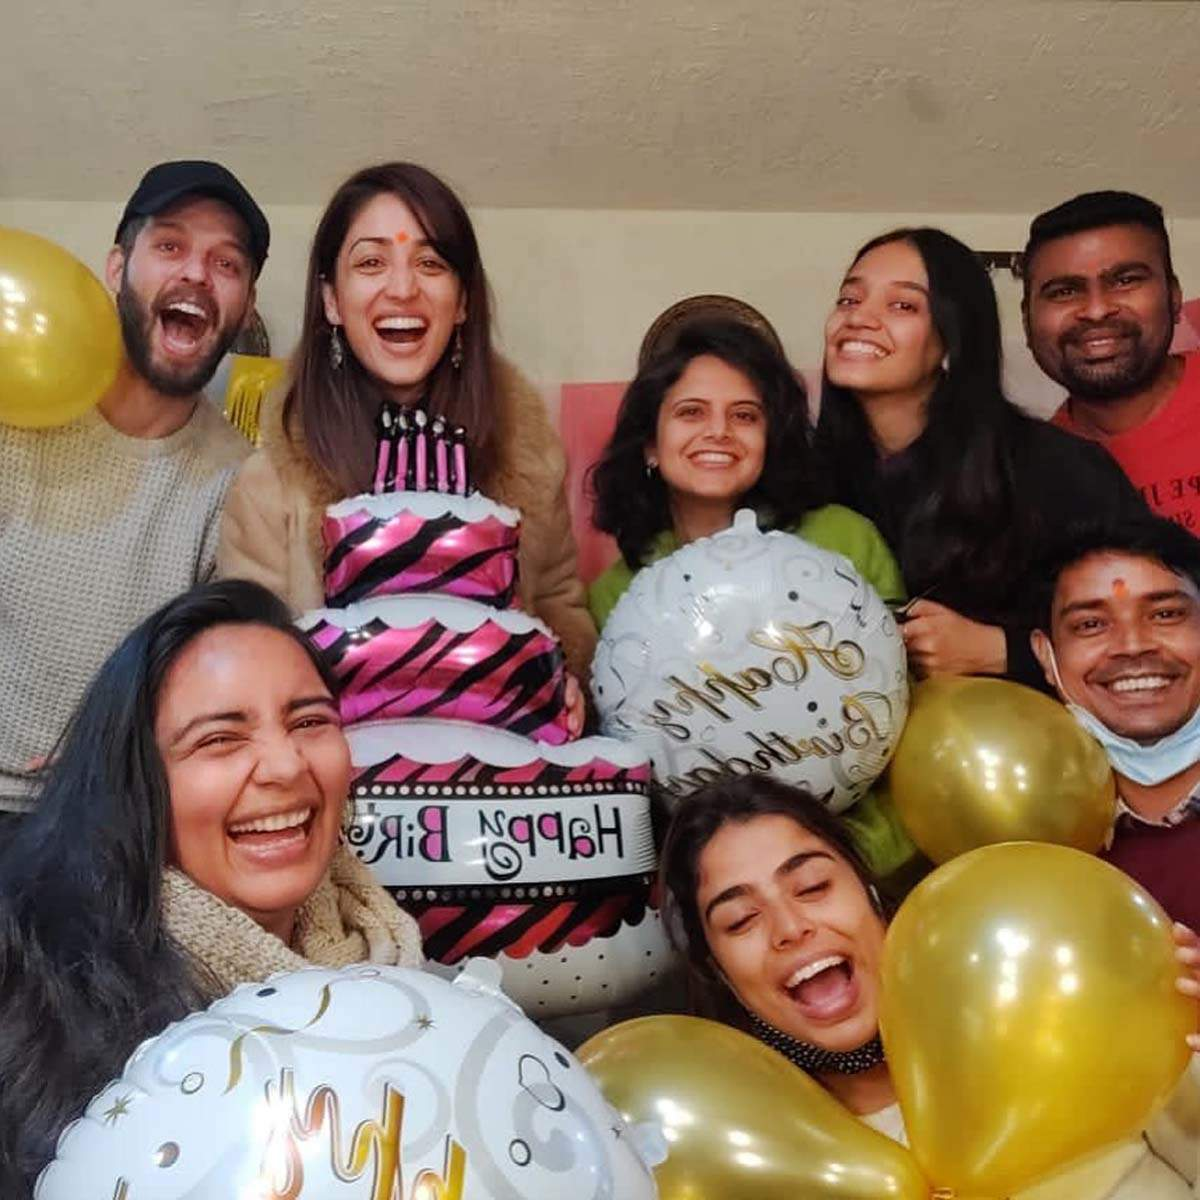 Exciting inside pictures from Yami Gautam's birthday party in Himachal Pradesh